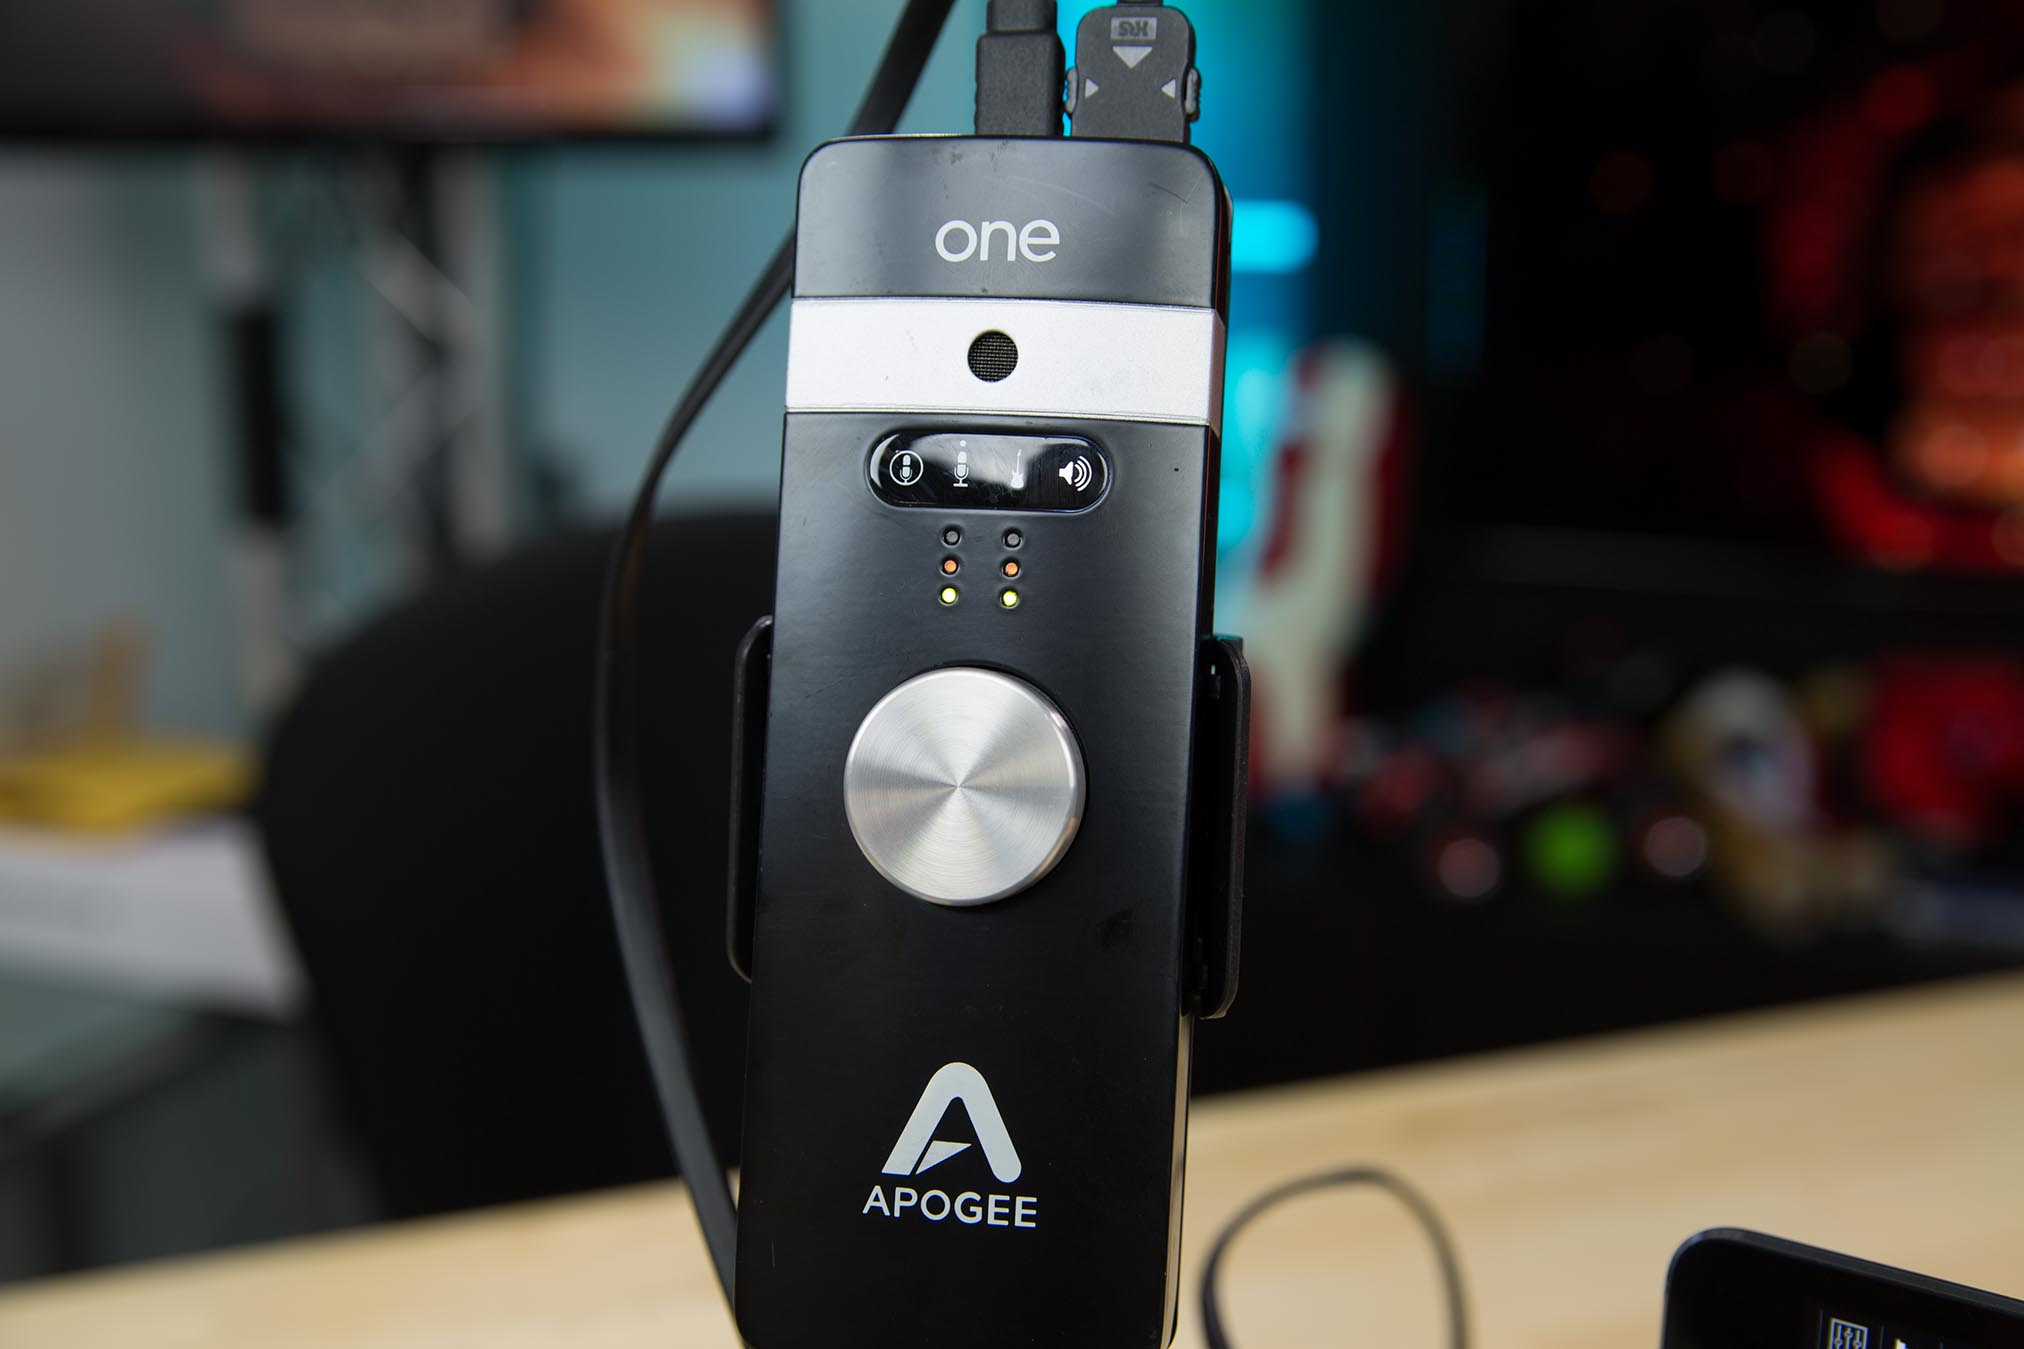 Apogee One LEDs